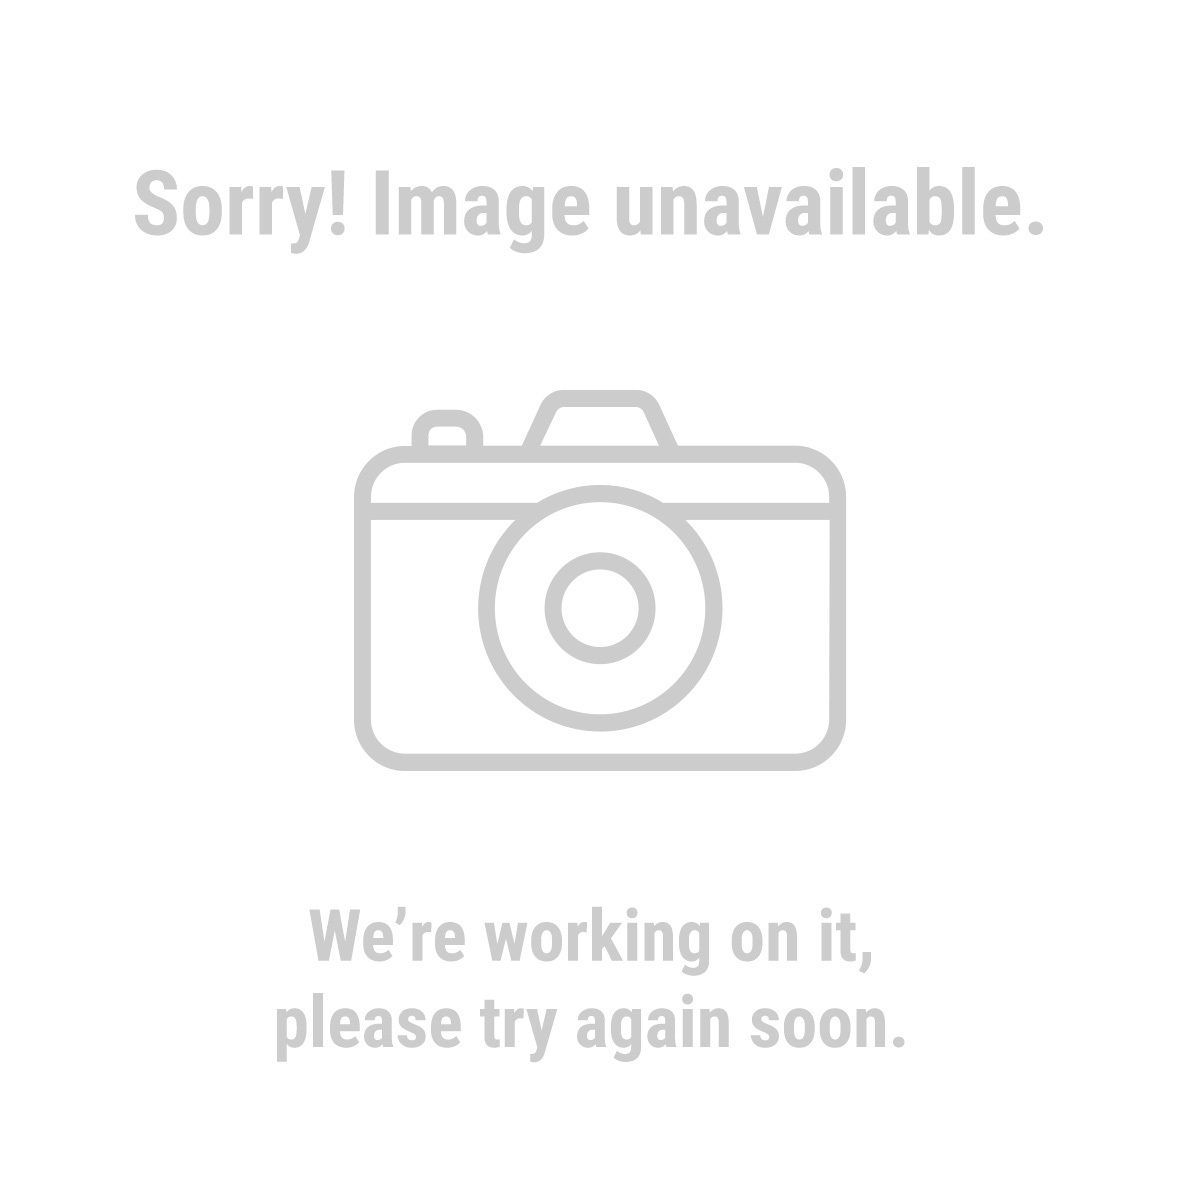 Central Pneumatic 61244 Medium Barrel Air Hammer with Chisel